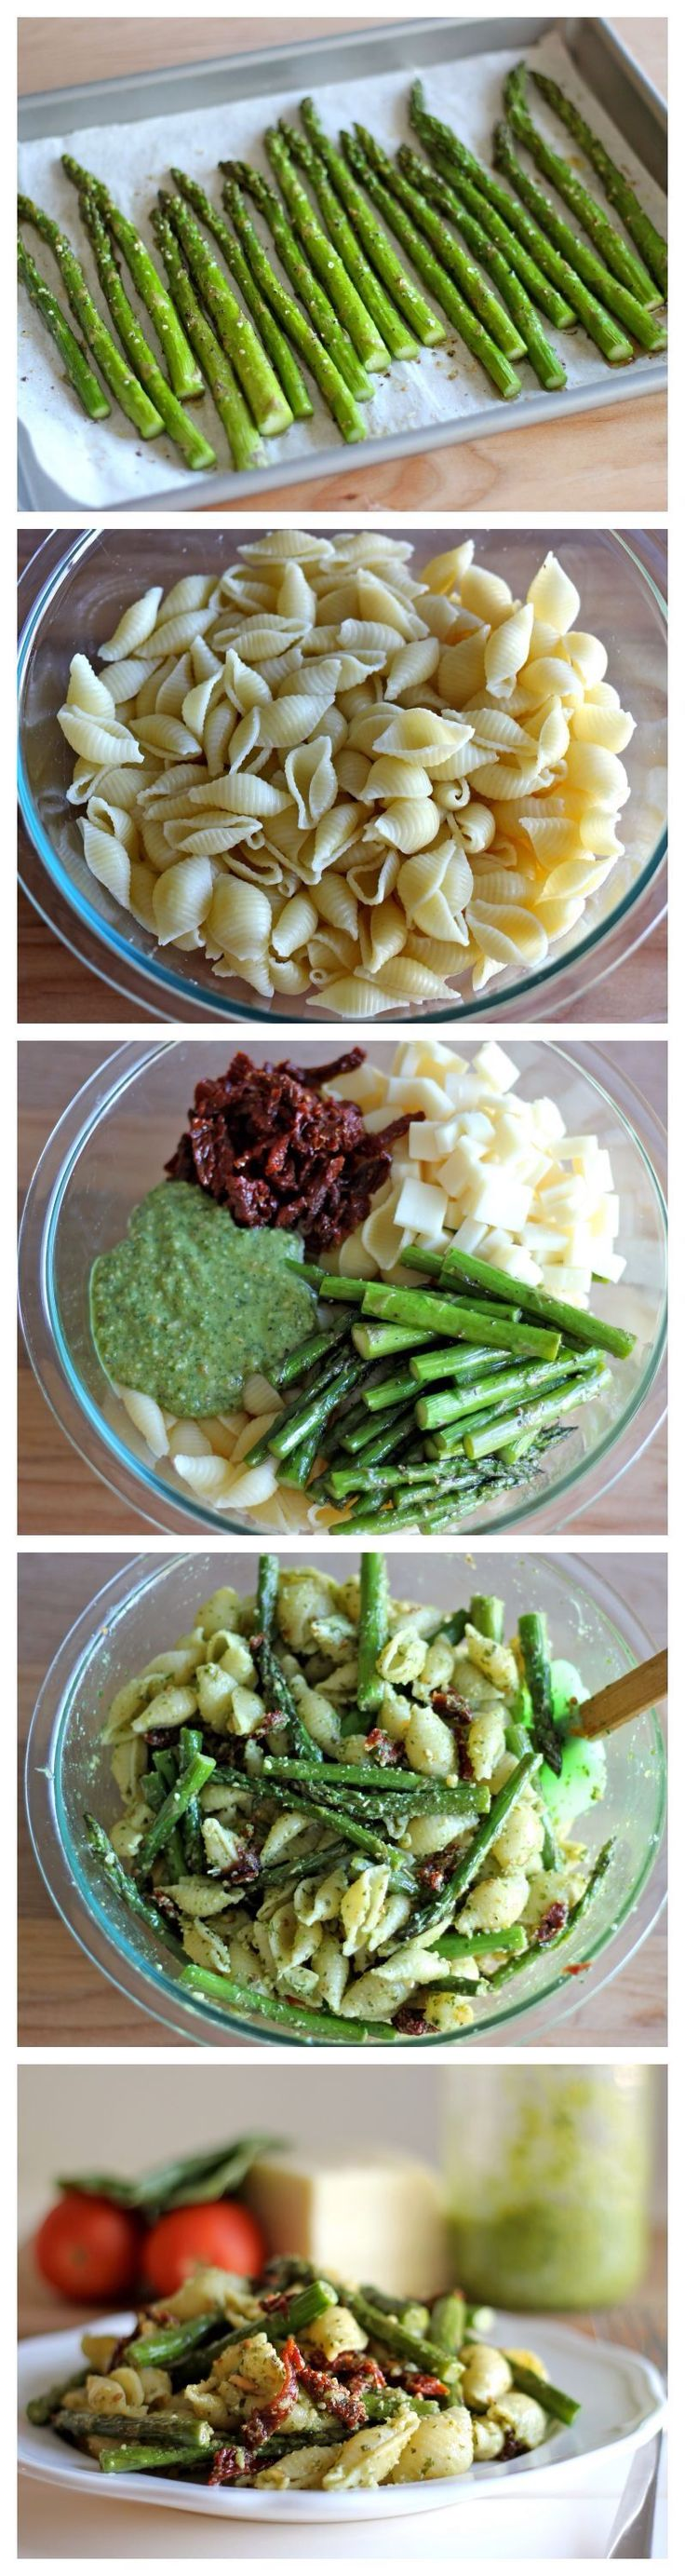 Pesto Pasta With Sun Dried Tomatoes And Roasted Asparagus ~ Look no more for a whole new healthy pasta dish as this one kills two birds with one stone!